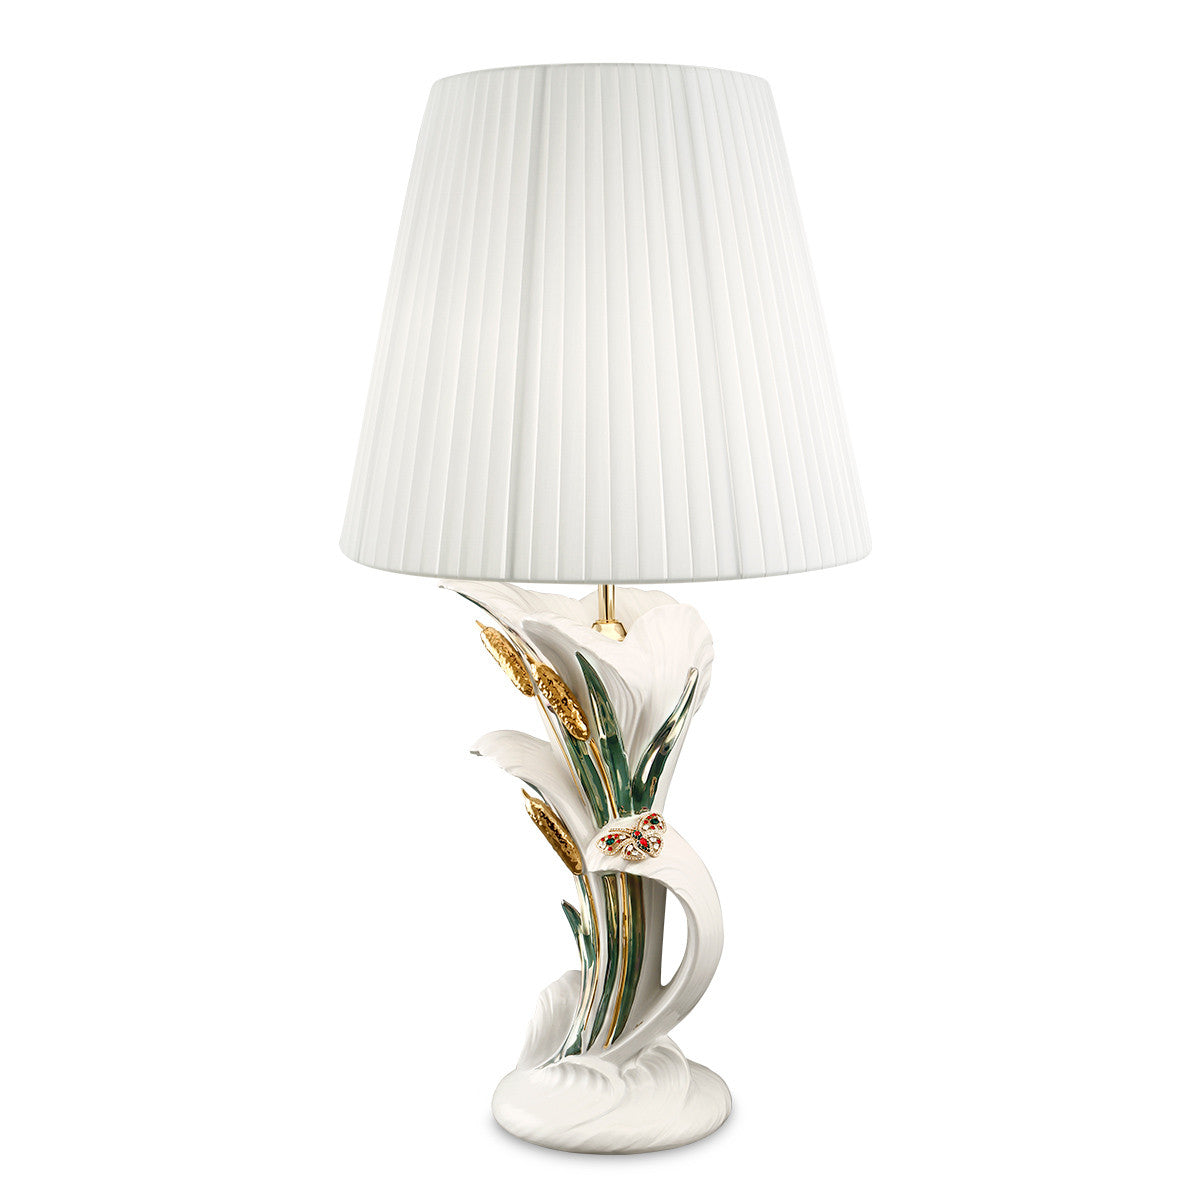 Hand painted pottery | Ceramic table lamp | 24kt gold with crystal butterfly